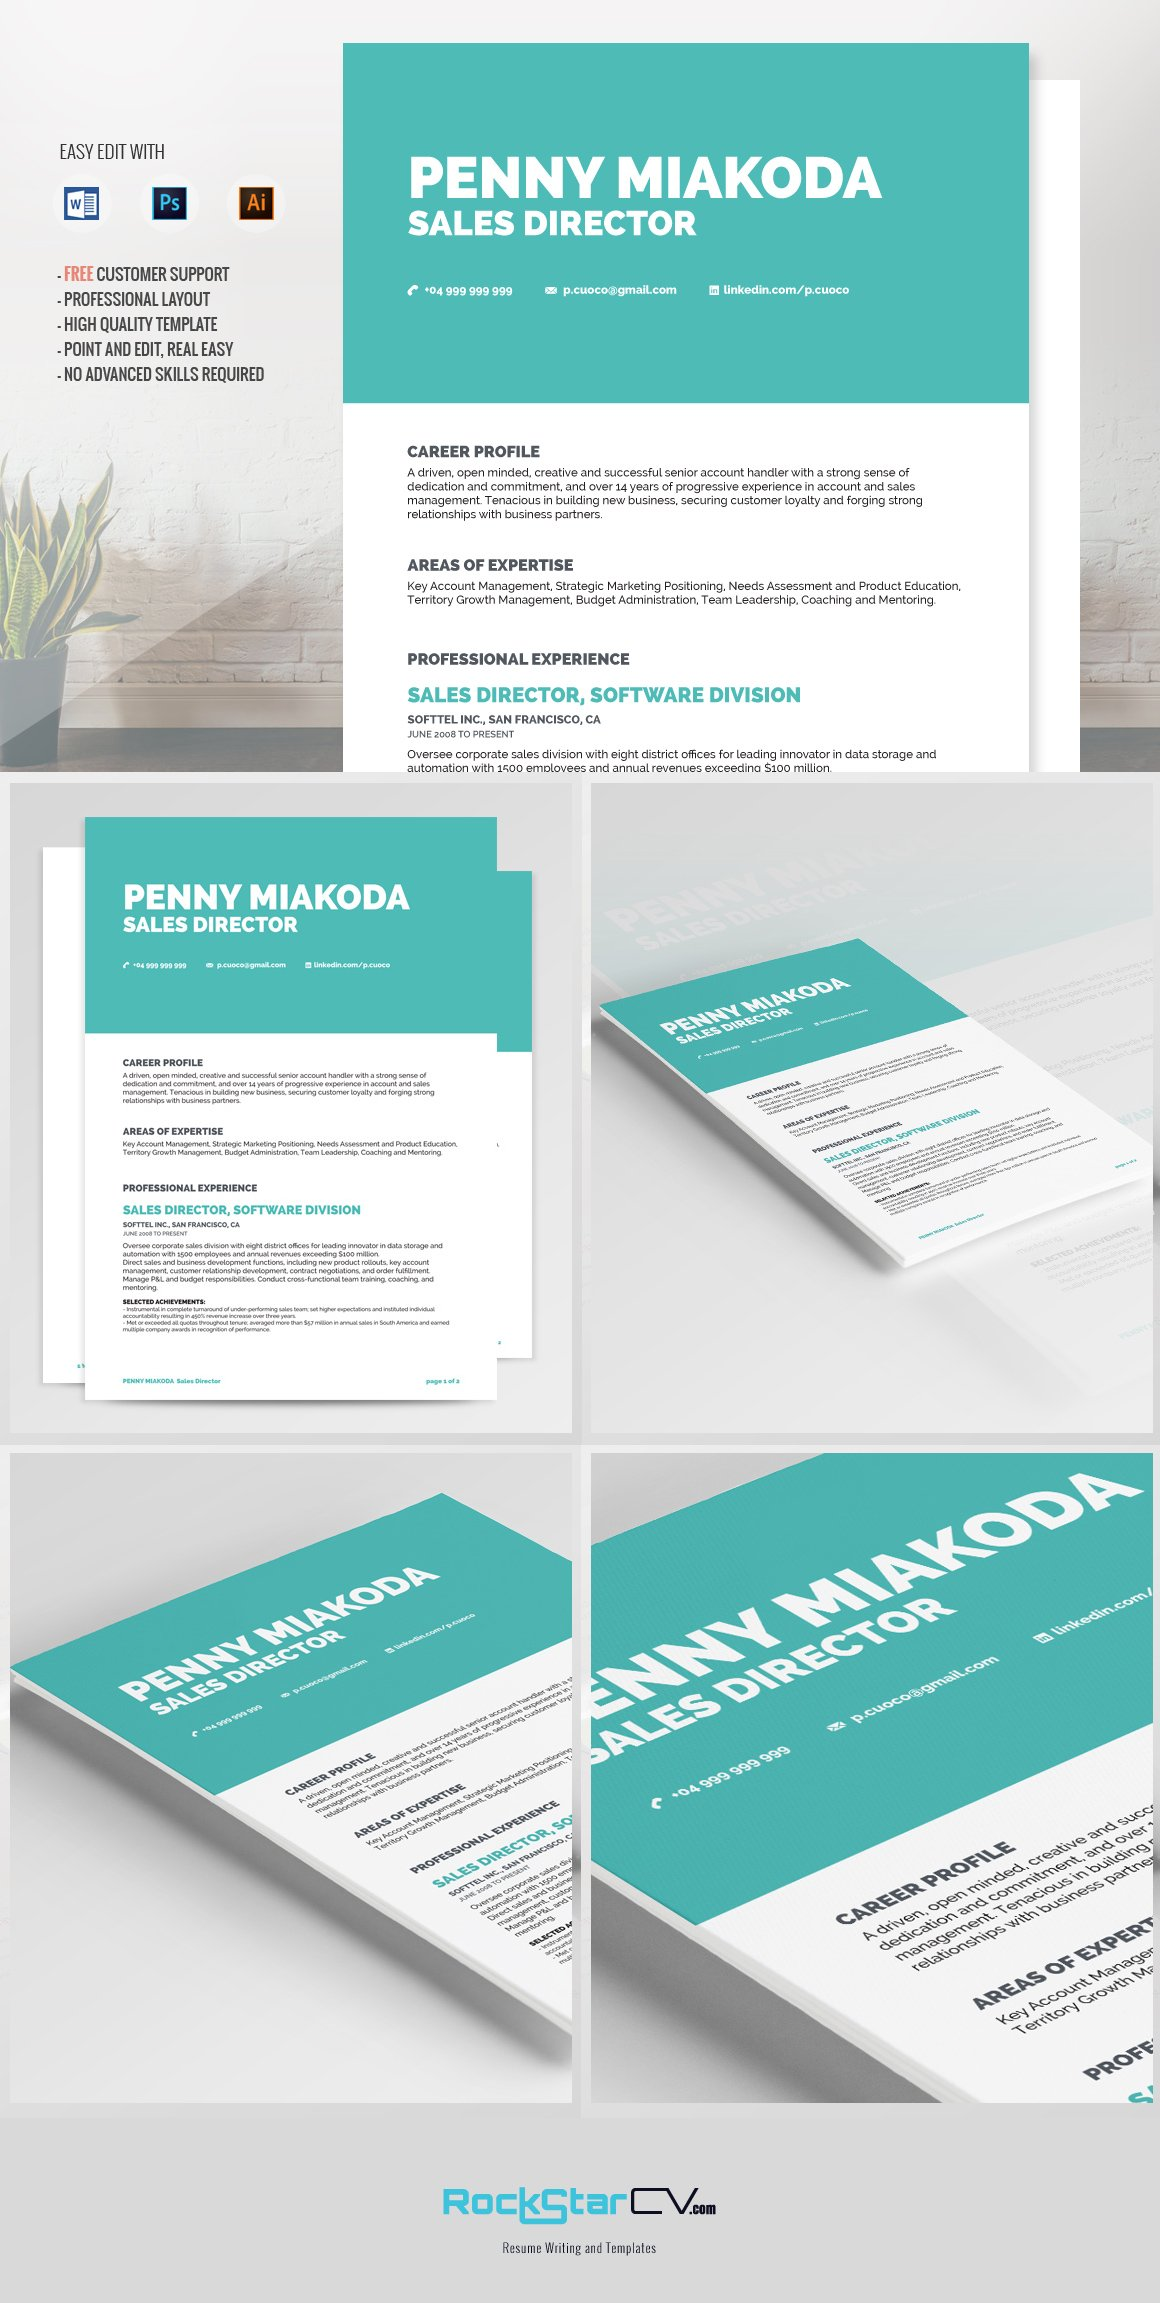 resumes and cover letters resume template miakoda resume templates creative market 24484 | miakoda resume template cm 01